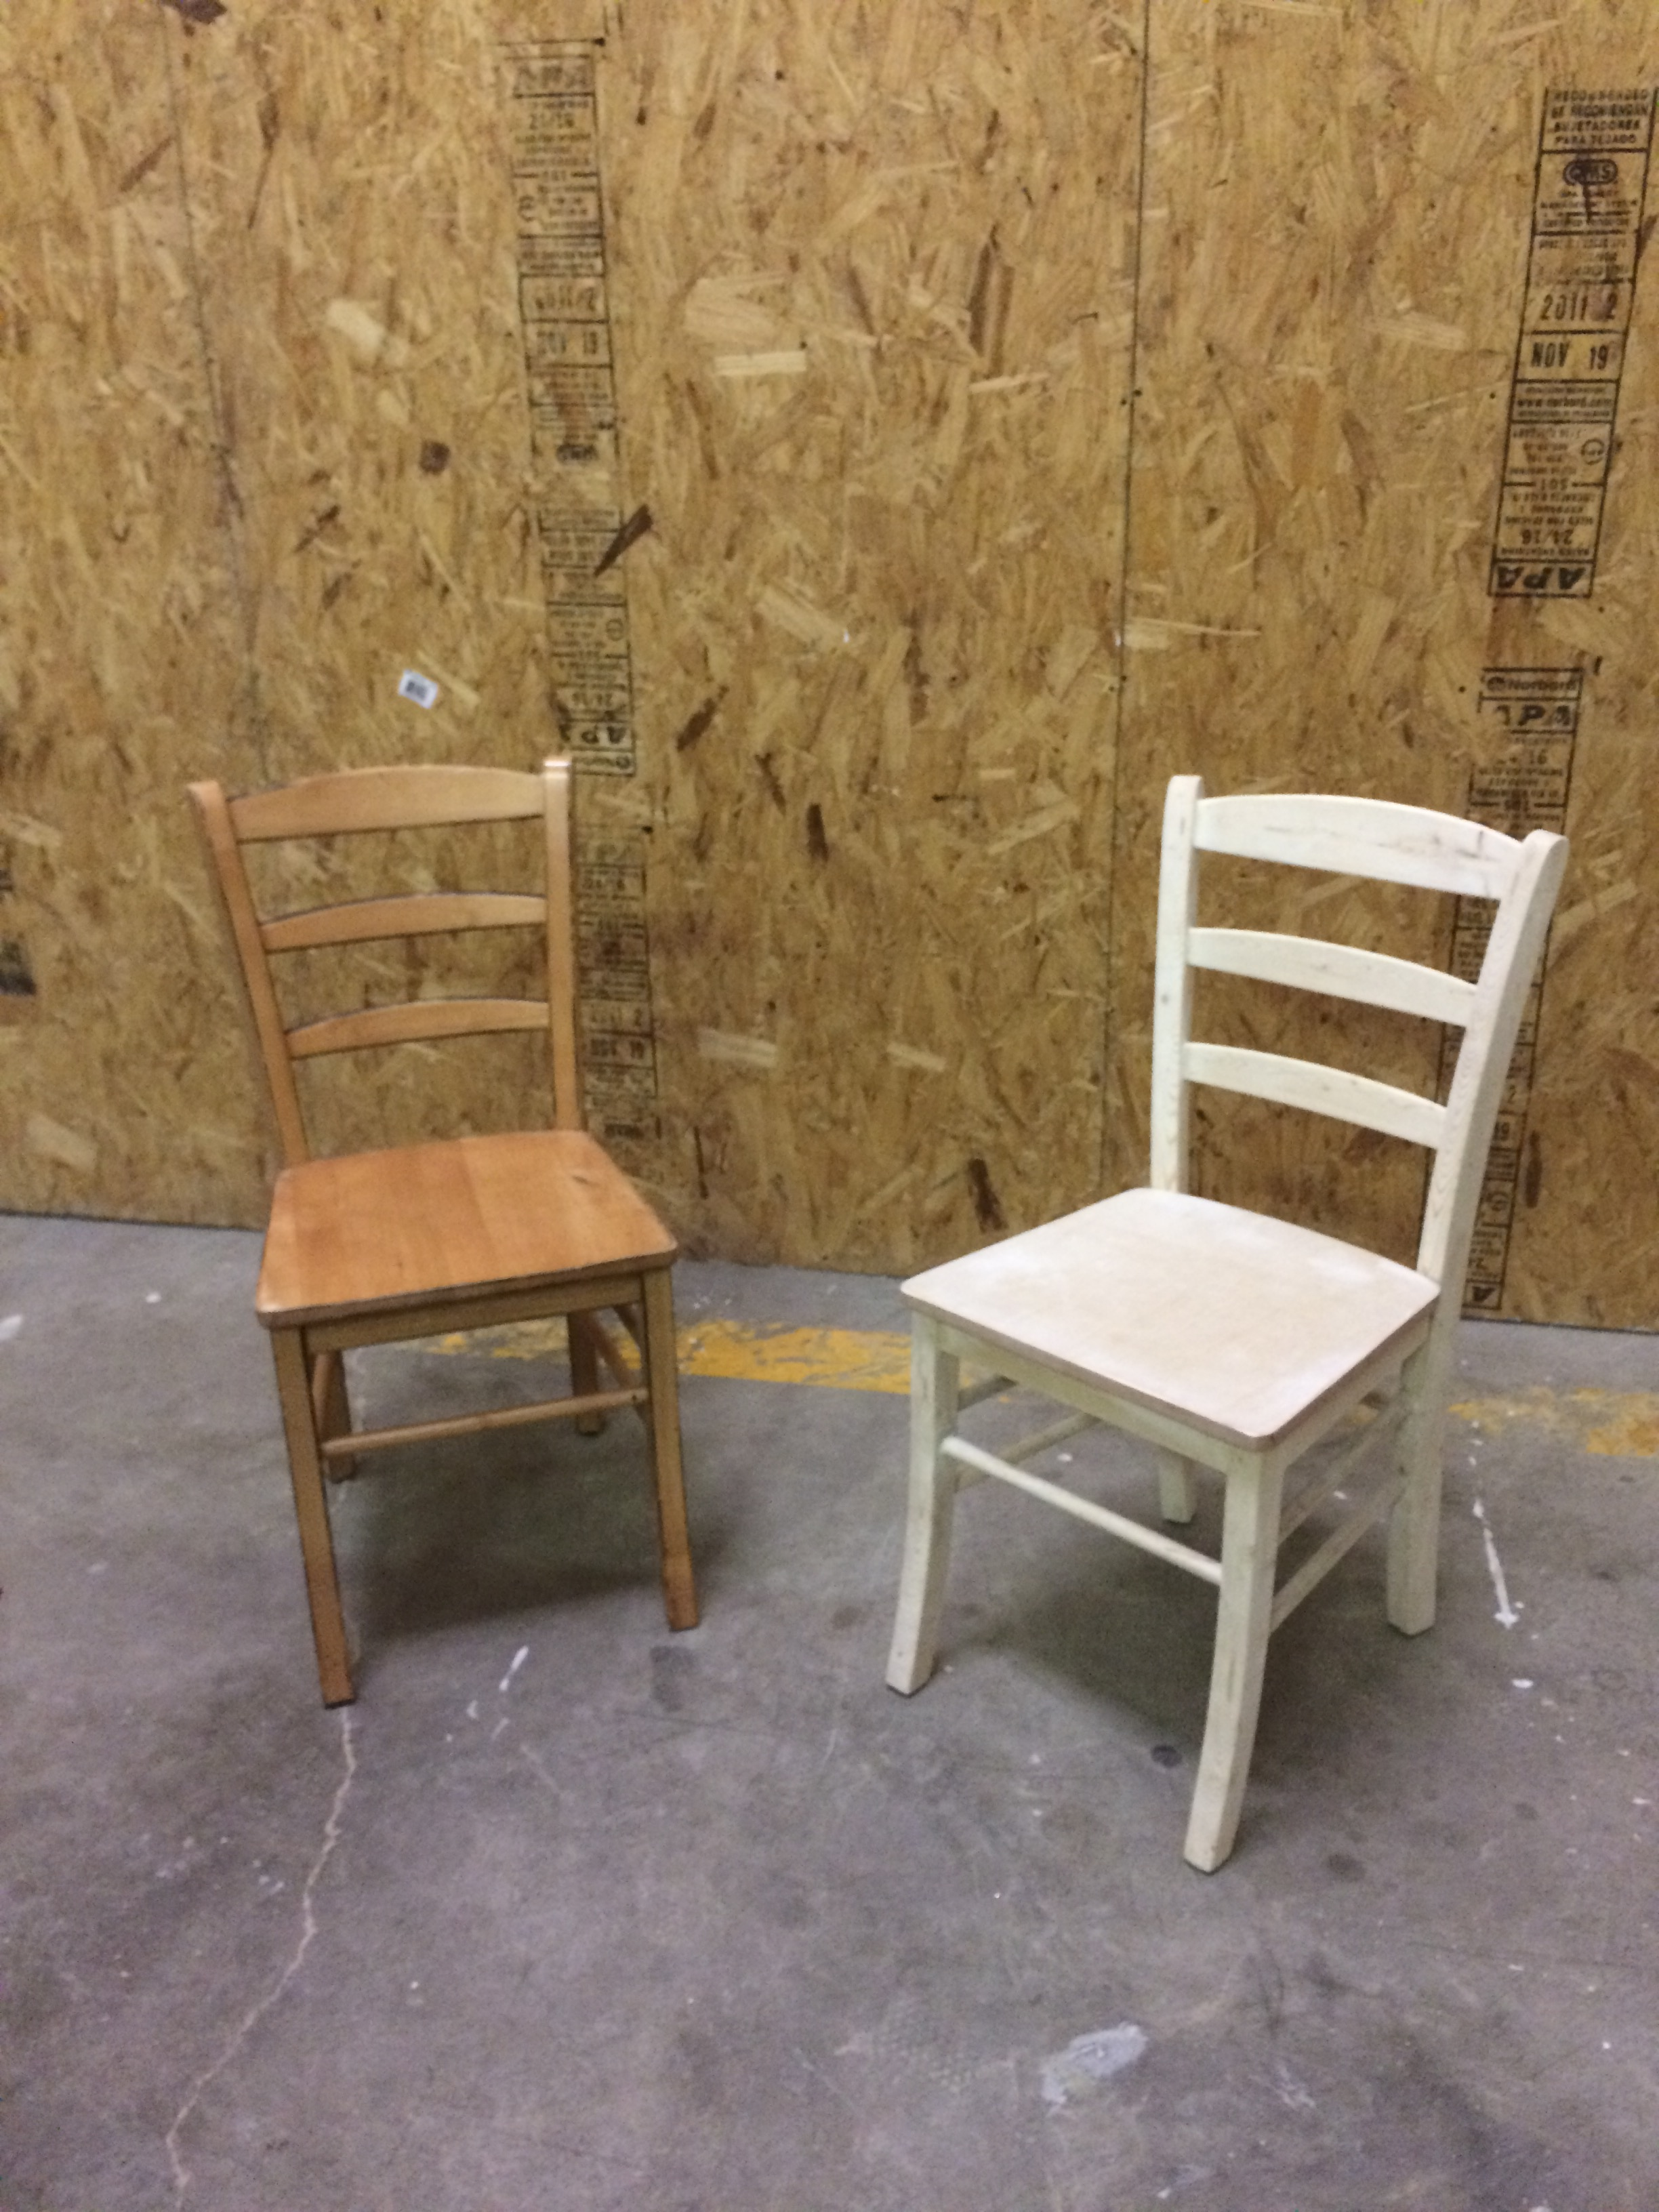 Old Chair next to New Chair